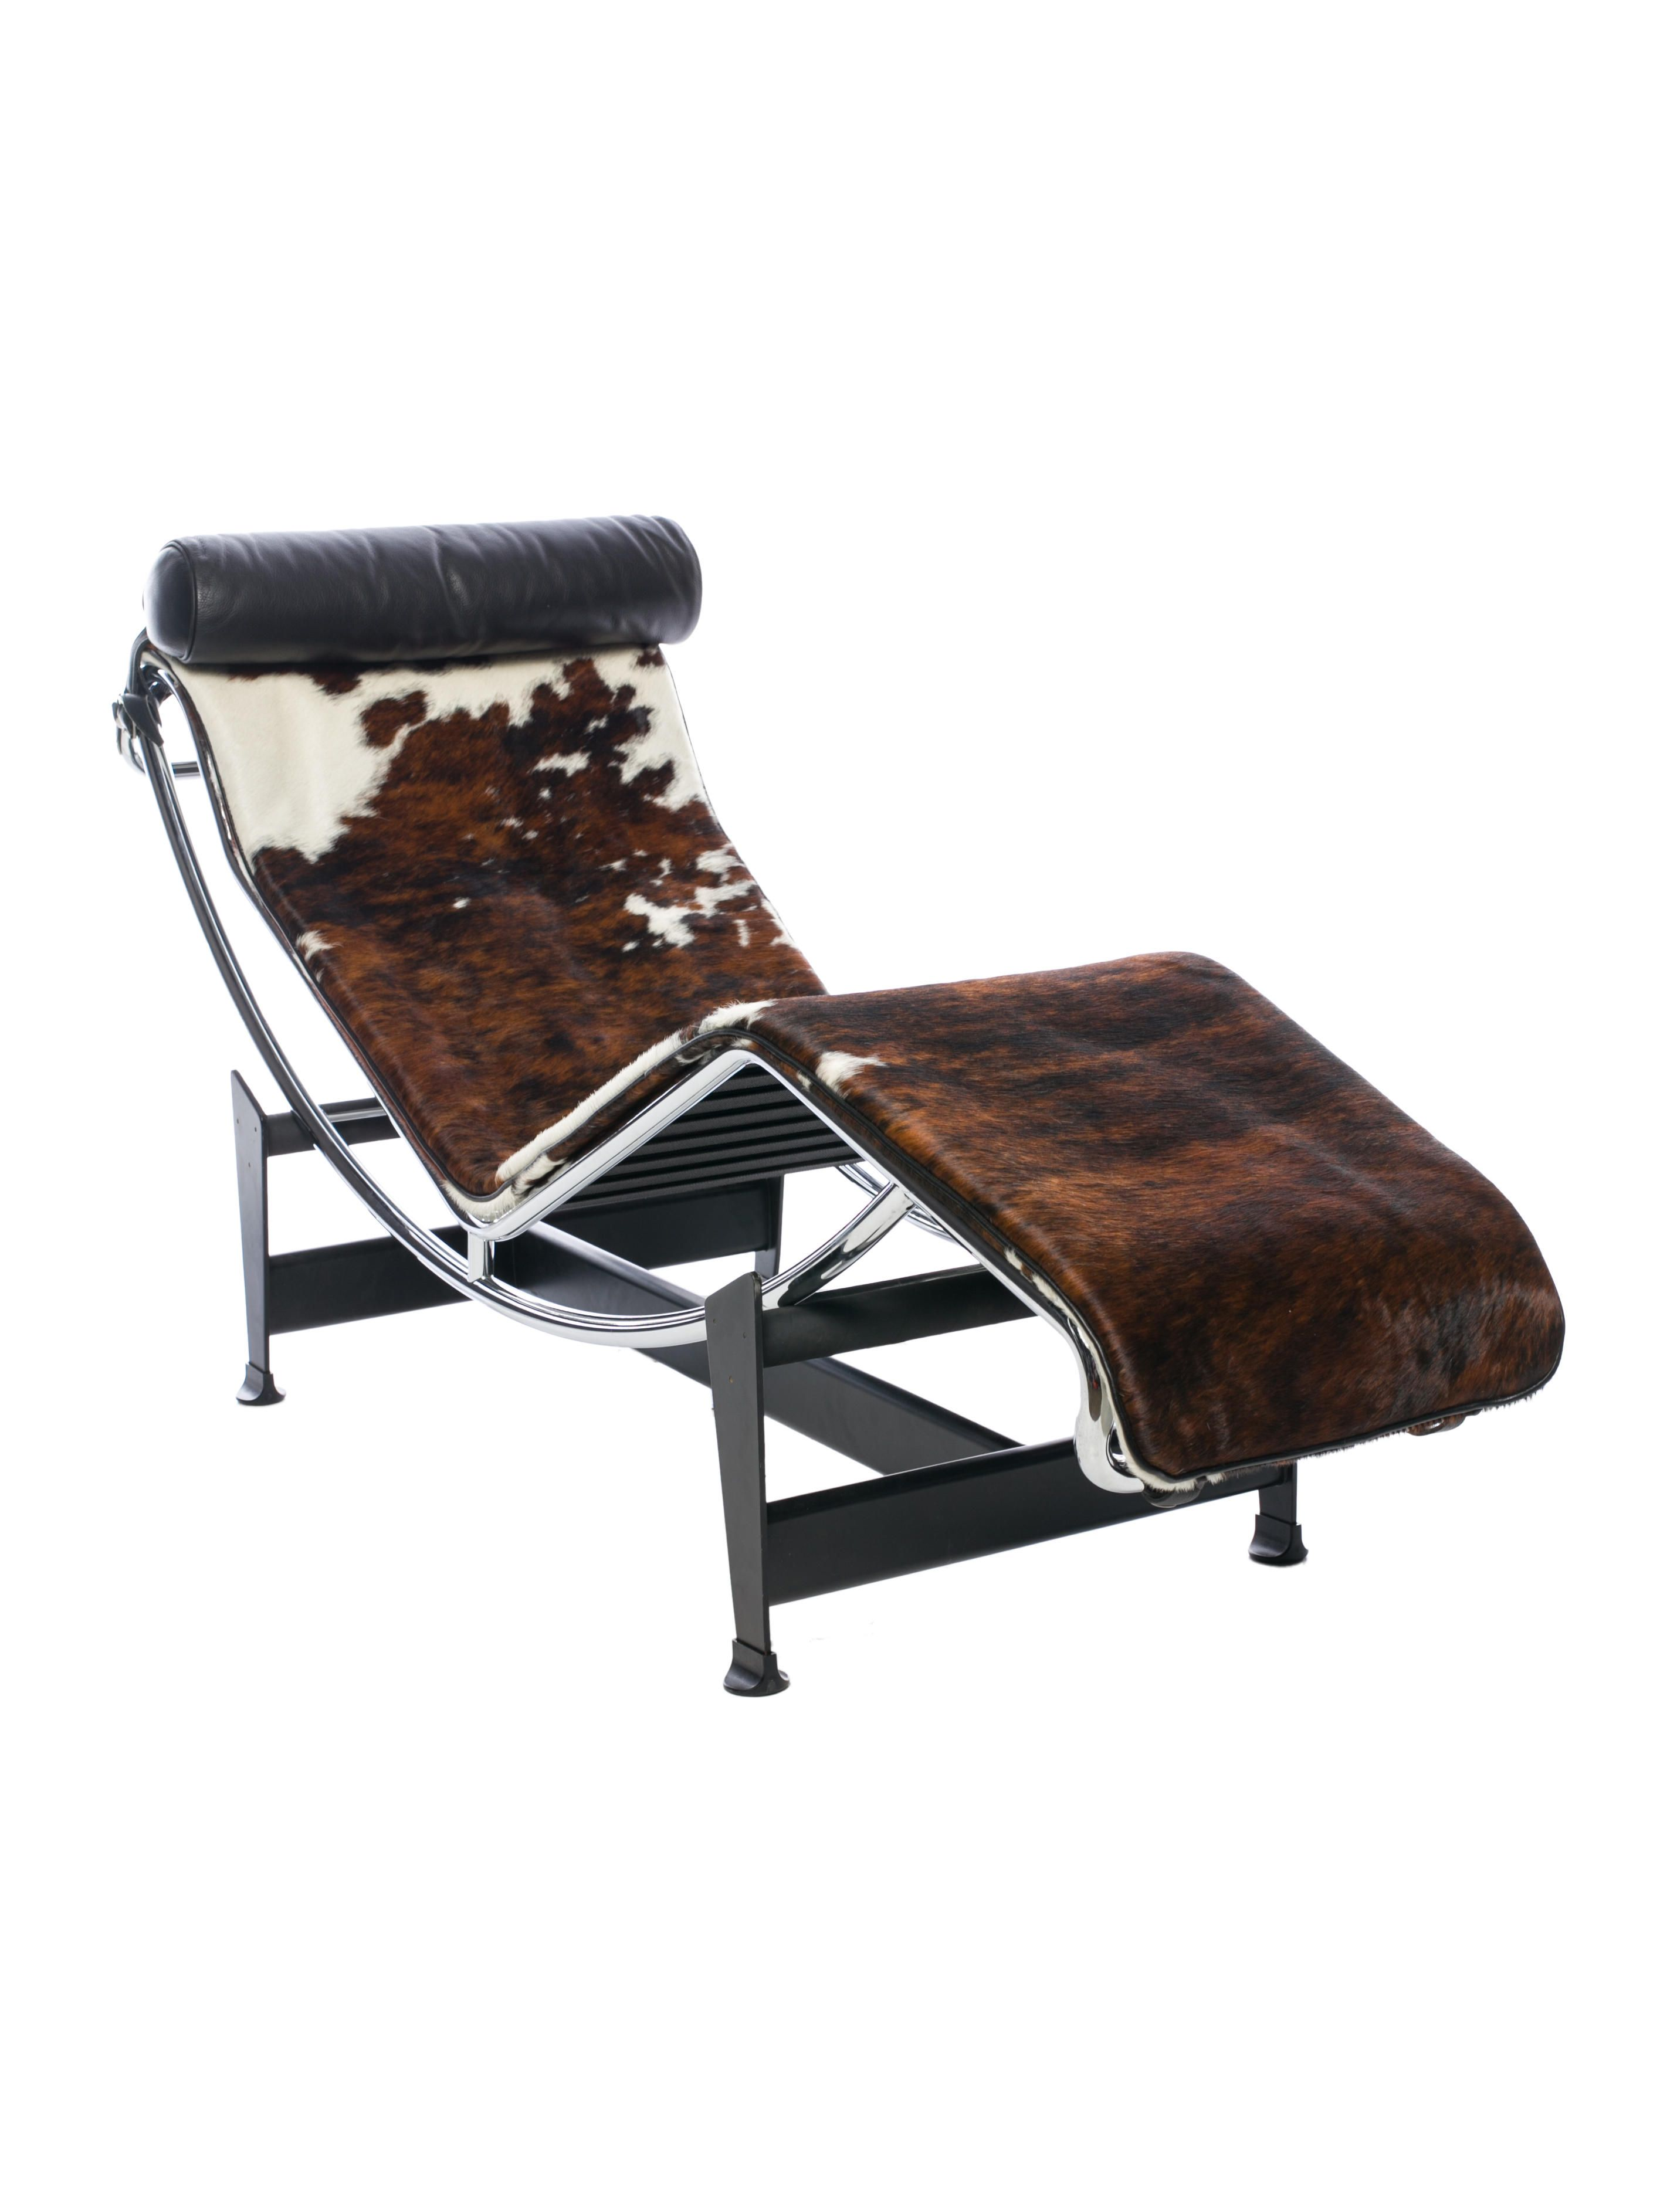 Le Corbusier LC4 Chaise Lounge Cassina Brown And White Cowhide With Black Leather Headrest